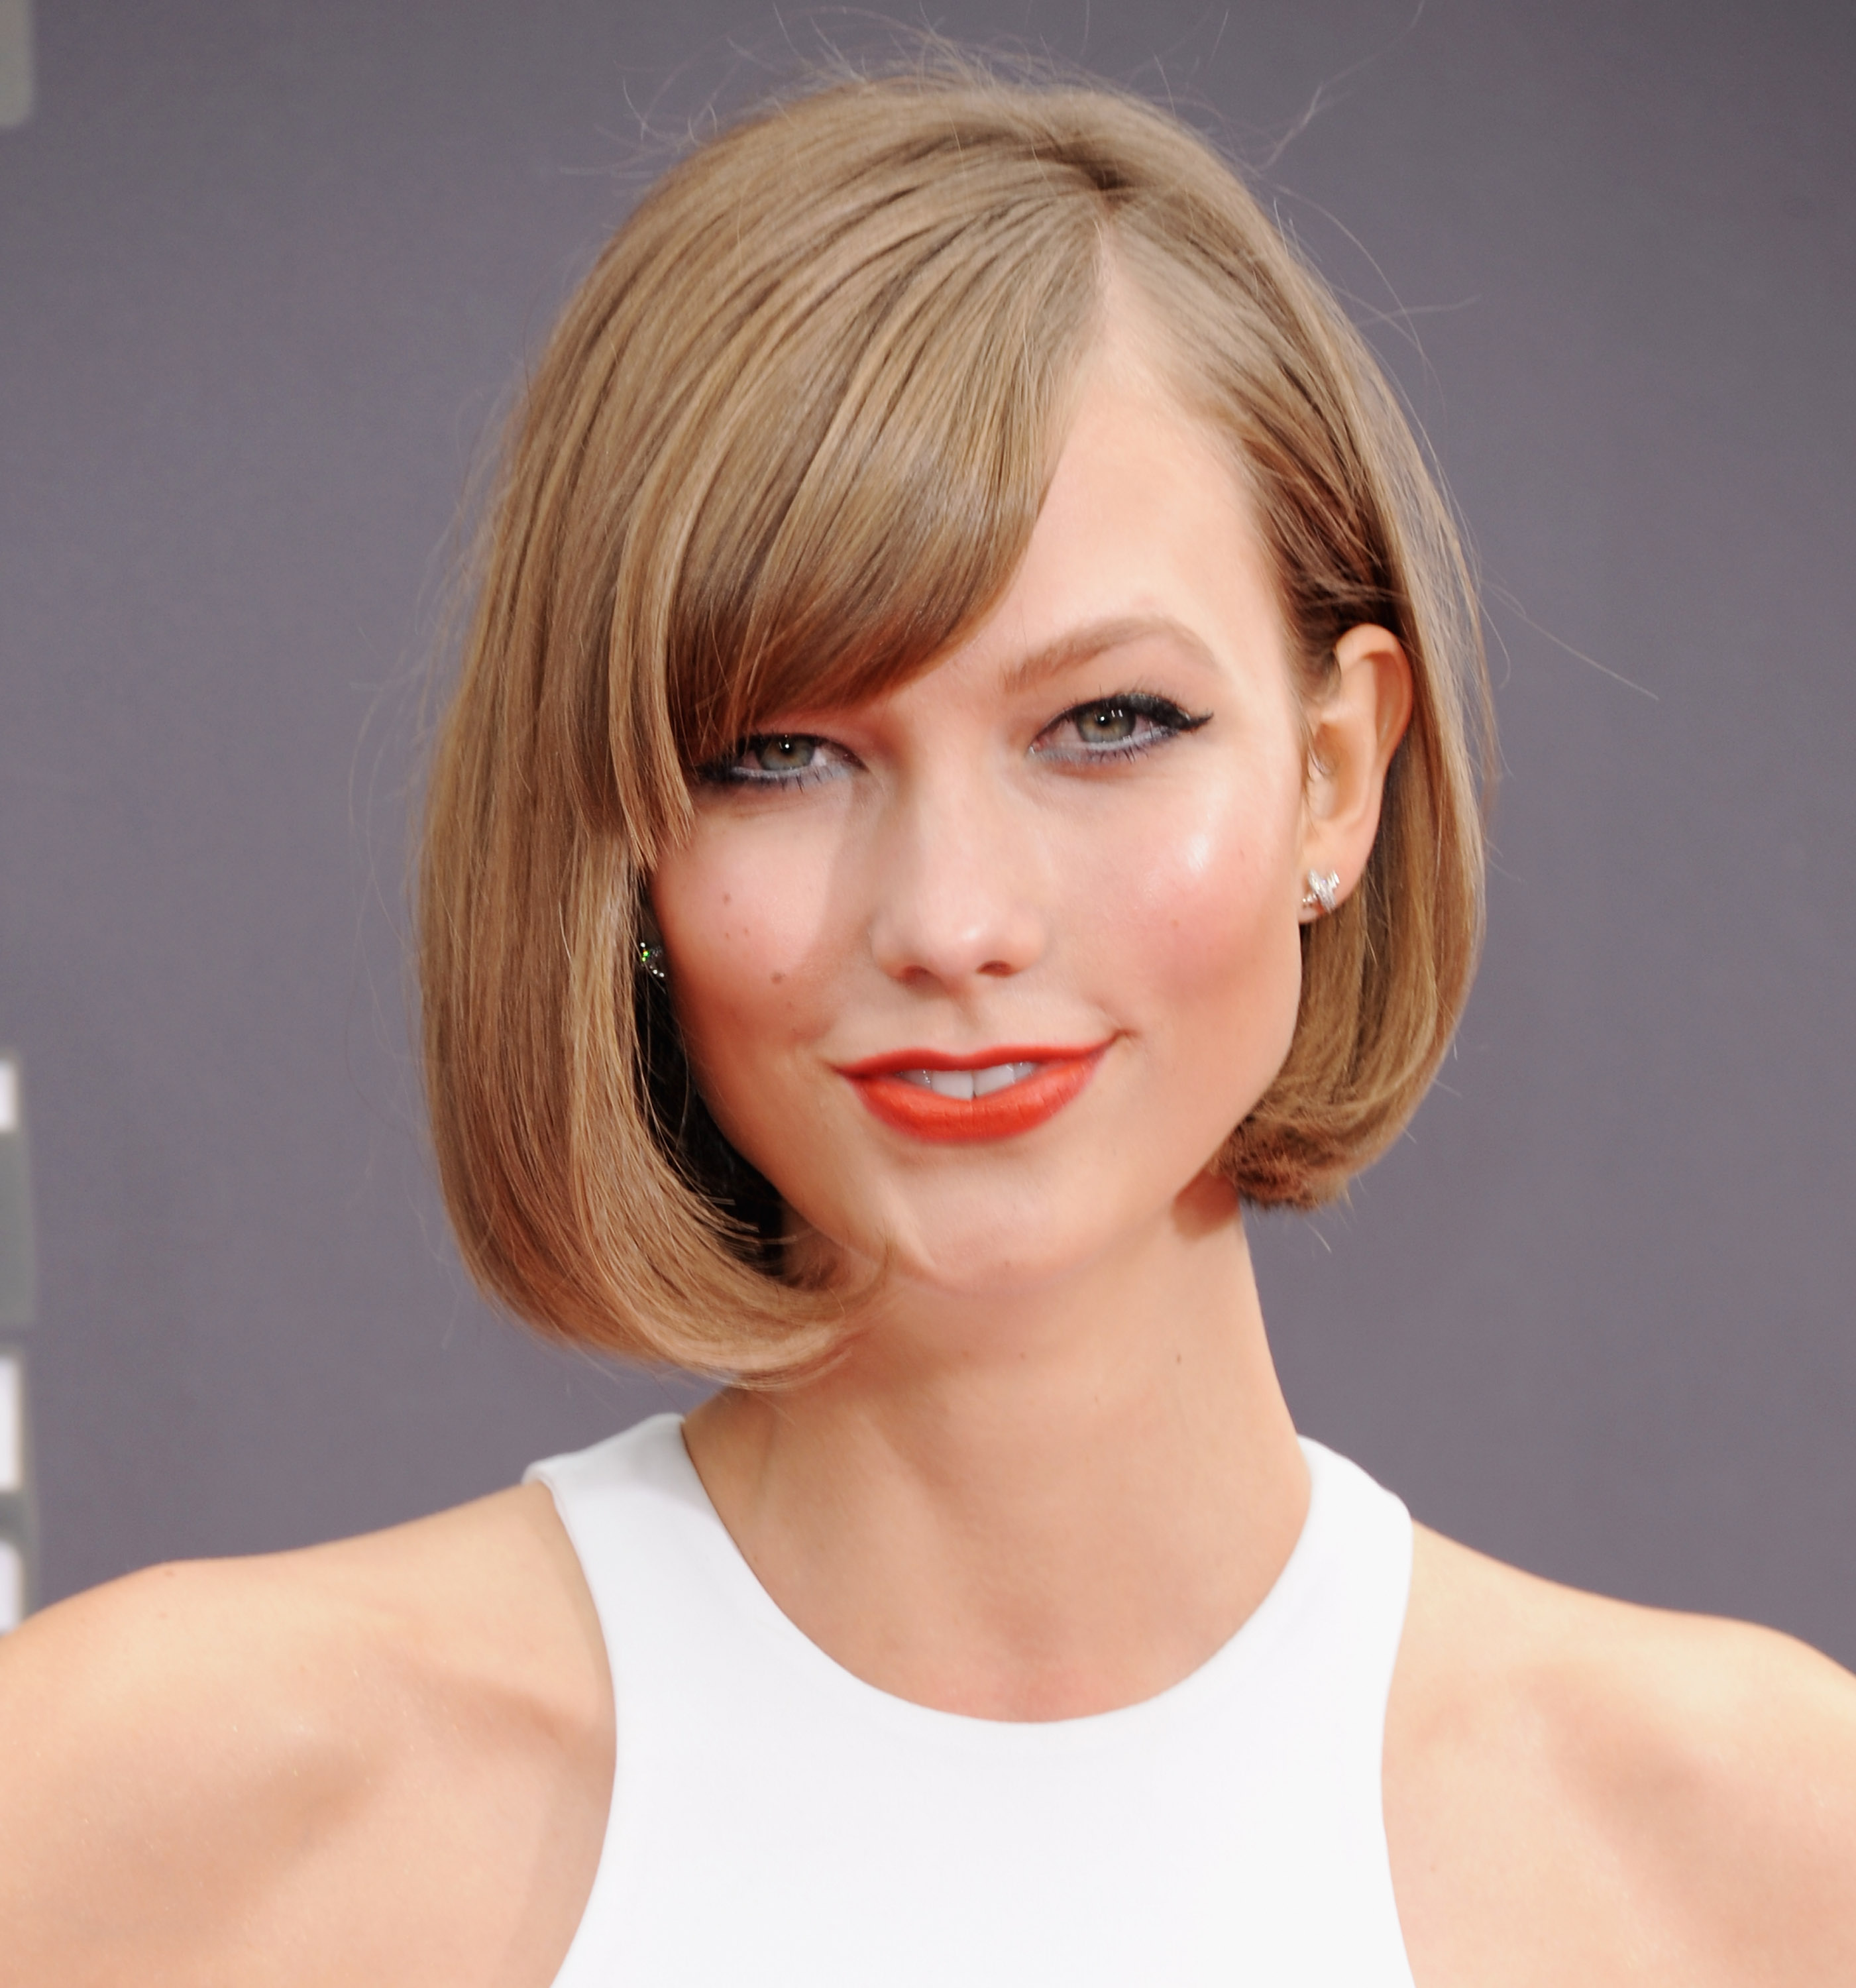 Lob Haircuts On Celebrities Best Long Bob Hairstyle Ideas - Bob hairstyle tips